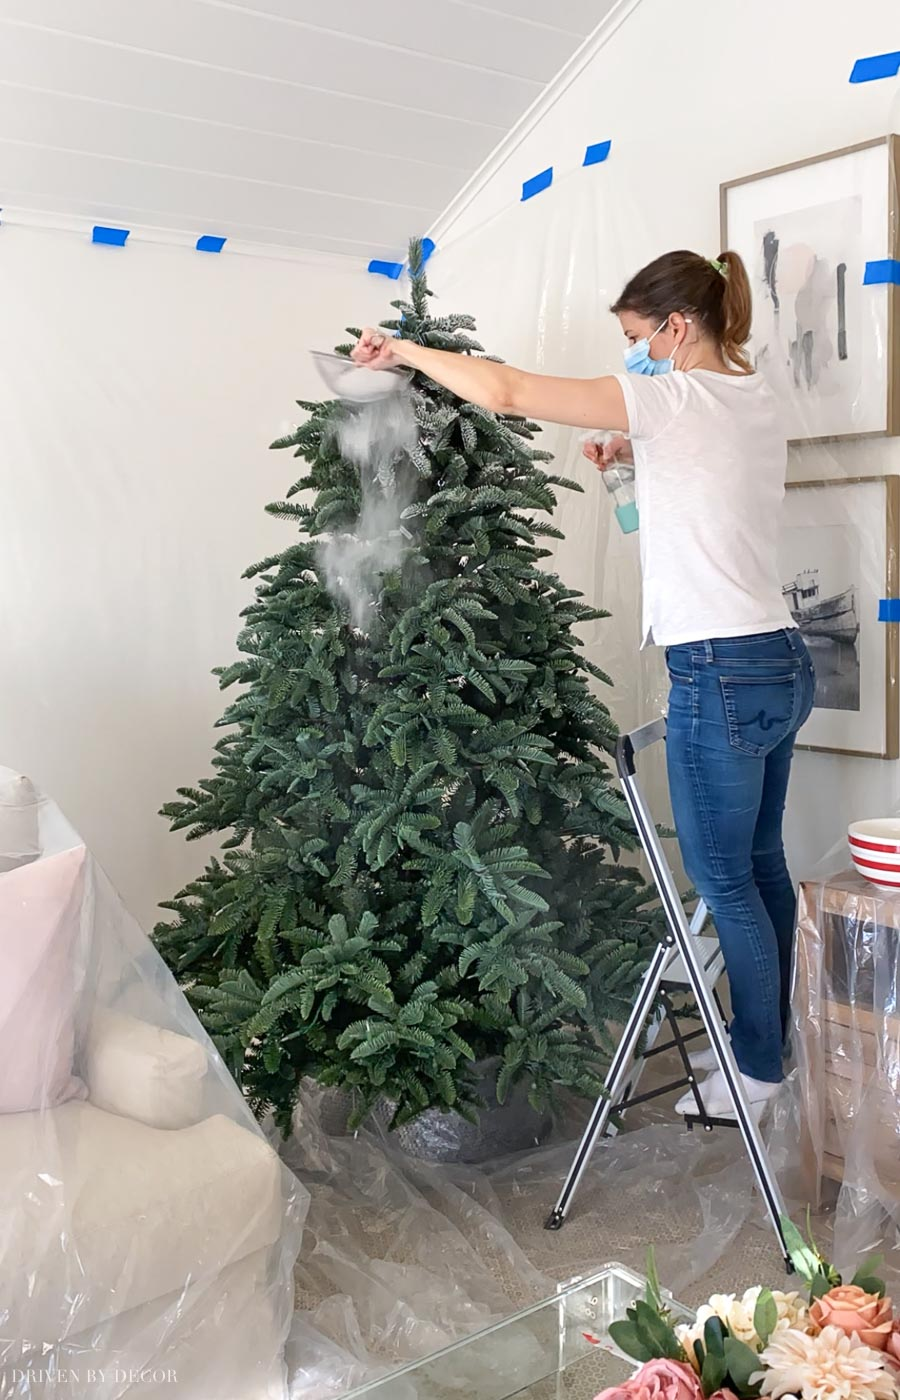 How to flock a Christmas tree! Such a helpful step by step of what to do!